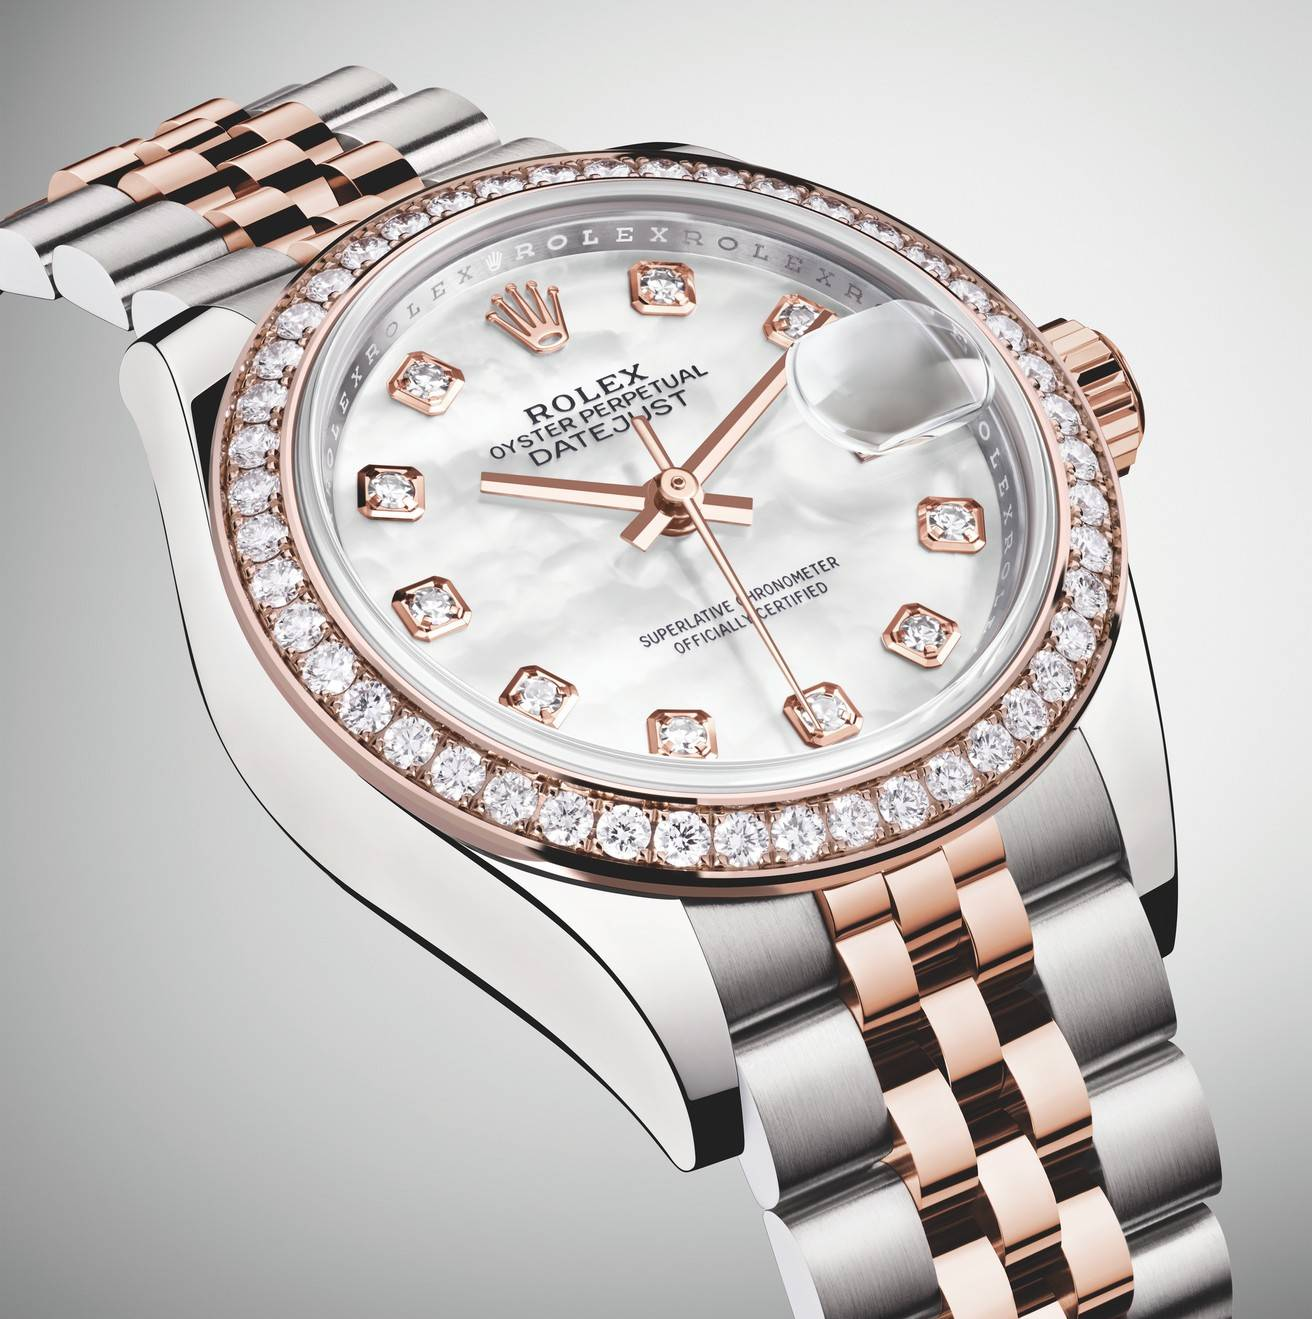 Rolex Lady-Datejust 28 : montre femme par excellence